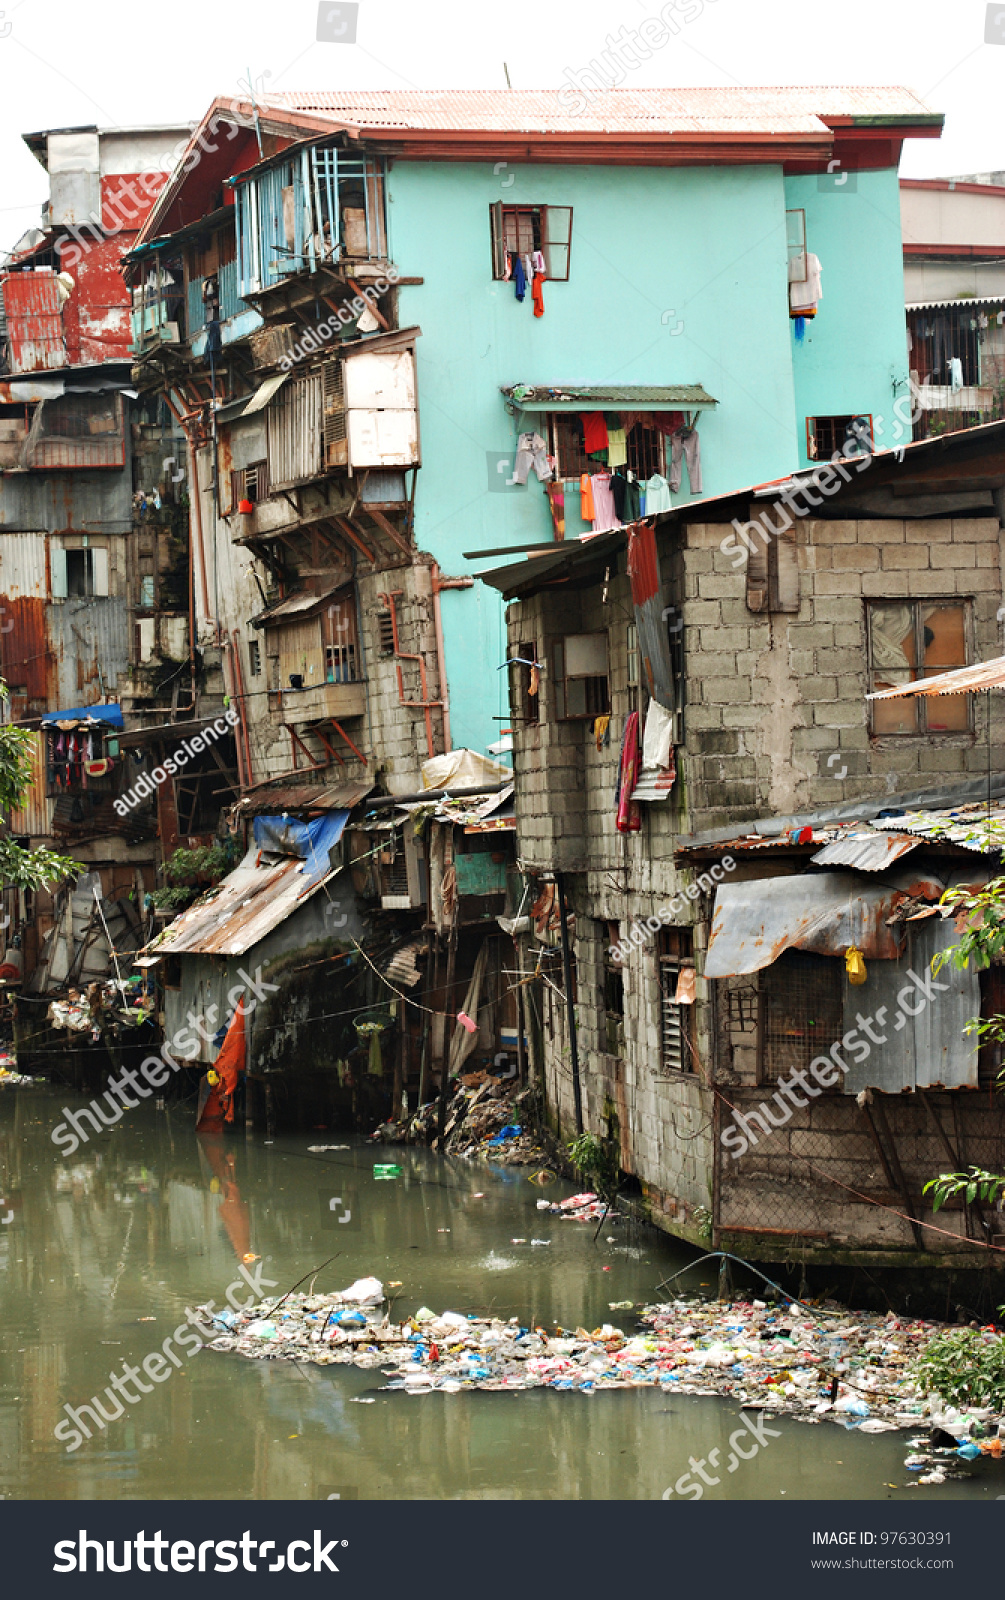 slum and squatters resettlement in asean countries James trewby policies on slums: resettlement or upgrade this essay aims to discuss some of the issues regarding slums and policies for their removal or upgrading it begins by considering definitions, statistics and causes of slum growth.